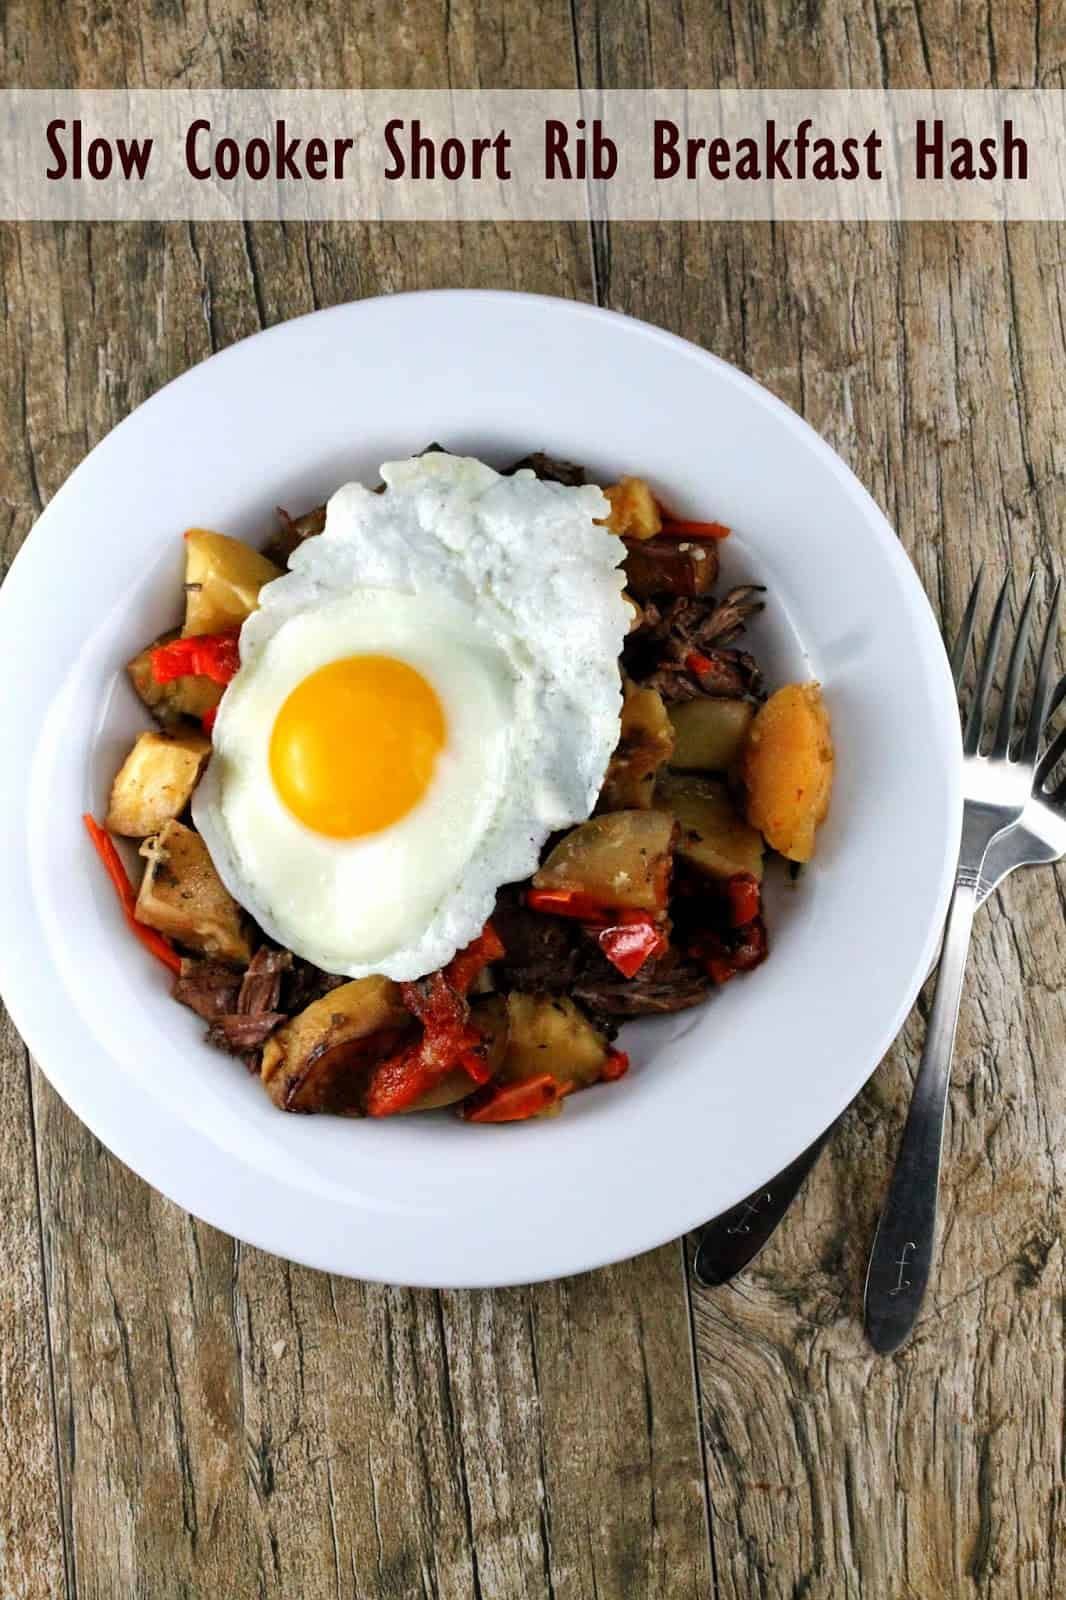 Slow Cooker Overnight Short Rib Breakfast Hash: seasoned potatoes, red bell pepper and short ribs are topped with a fried egg.